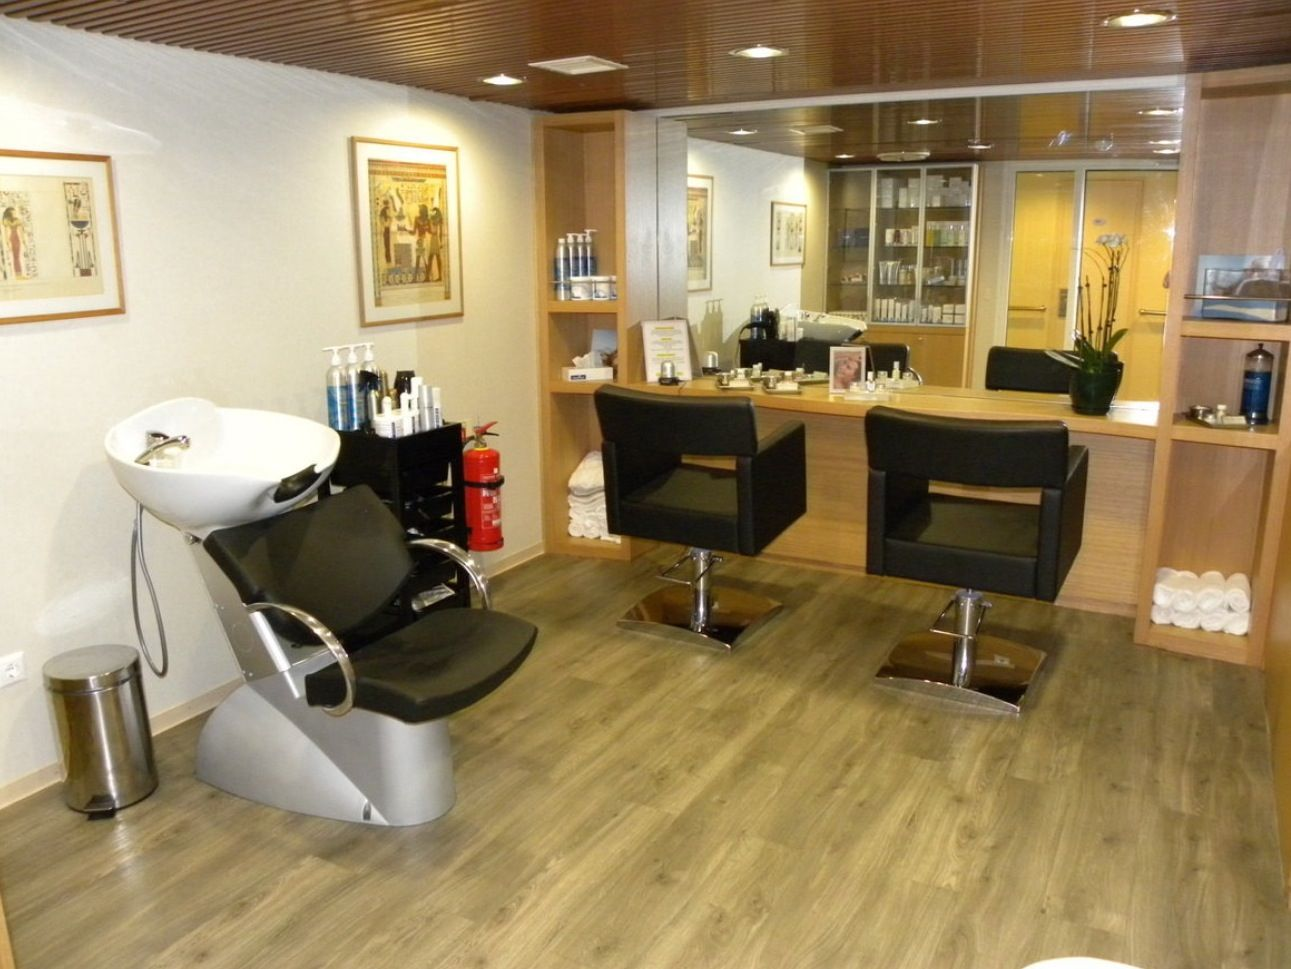 salon design ideas – mishinza.info